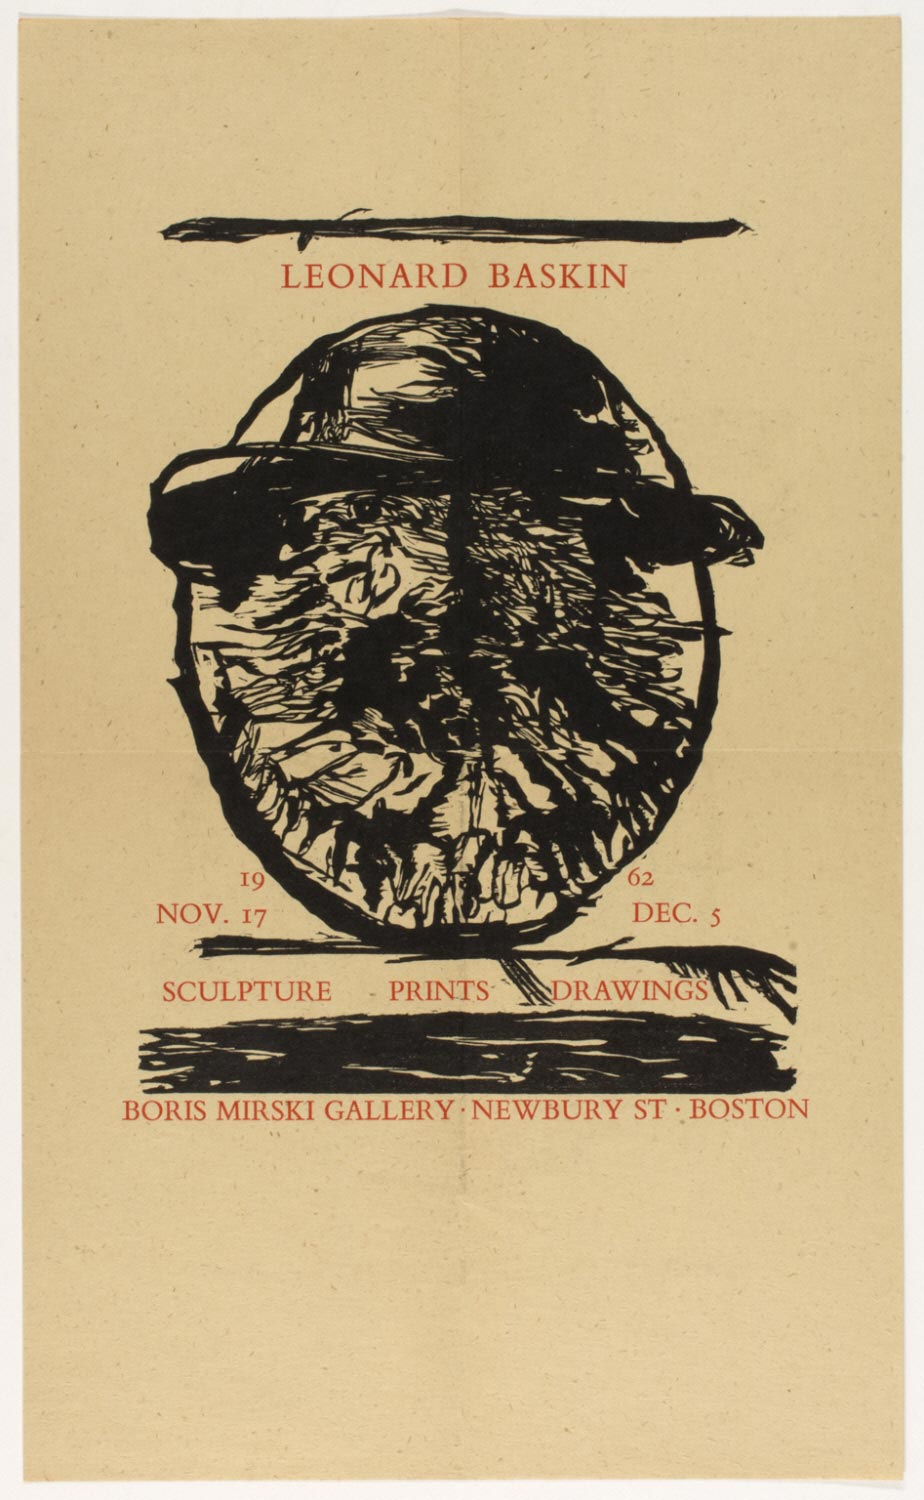 Announcement for Leonard Baskin: Sculpture - Prints - Drawings, Boris Mirski Gallery, Boston